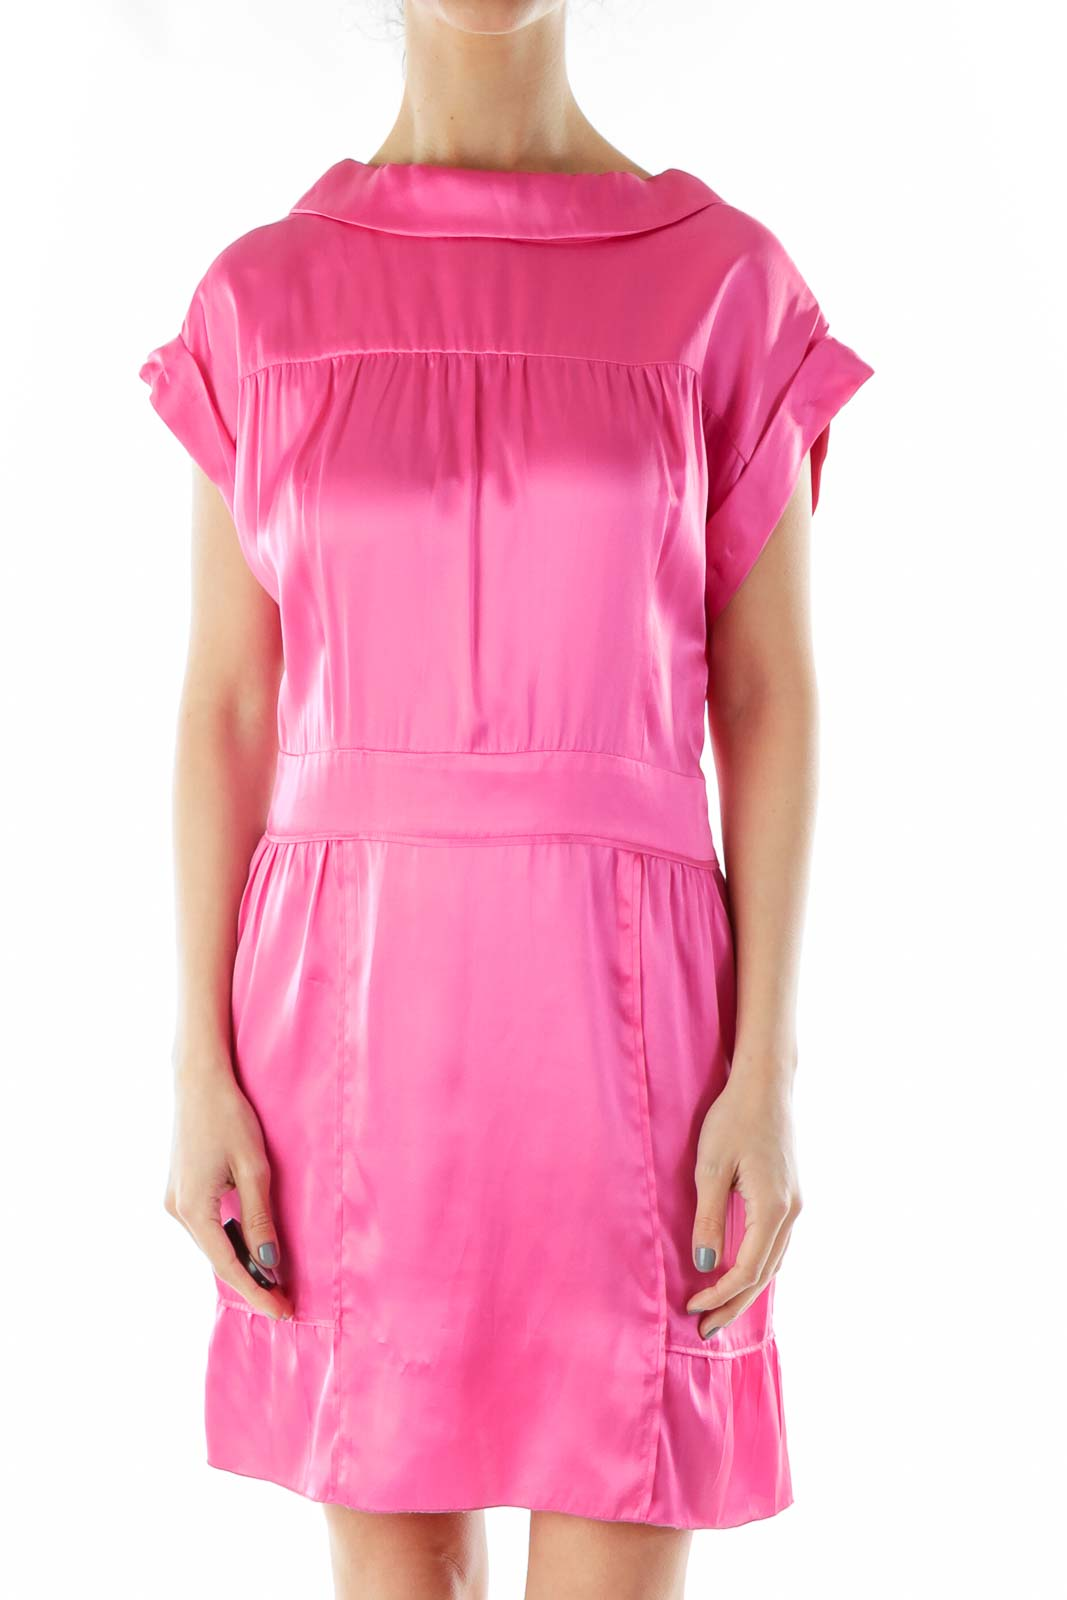 Pink Silk Cocktail Dress with Button Down Back Front